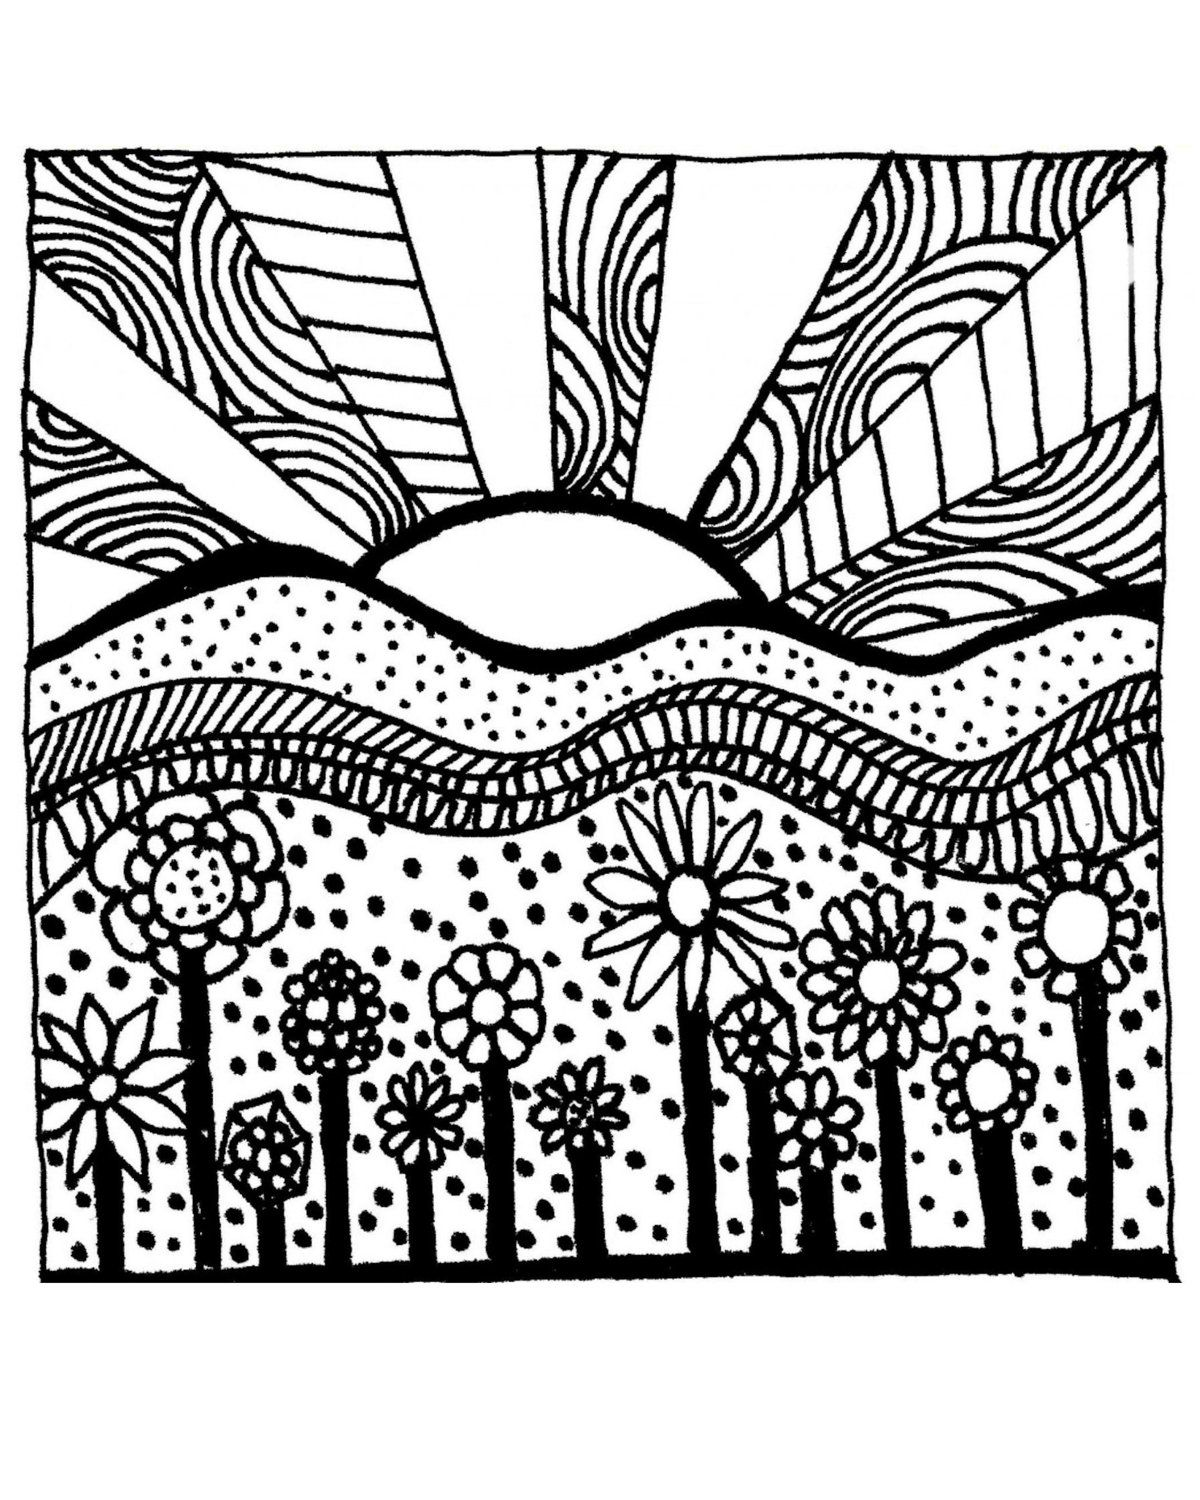 Free online printable adult coloring pages - 1000 Images About Coloring Pages On Pinterest Coloring Printable Adult Coloring Pages And Free Printable Coloring Pages